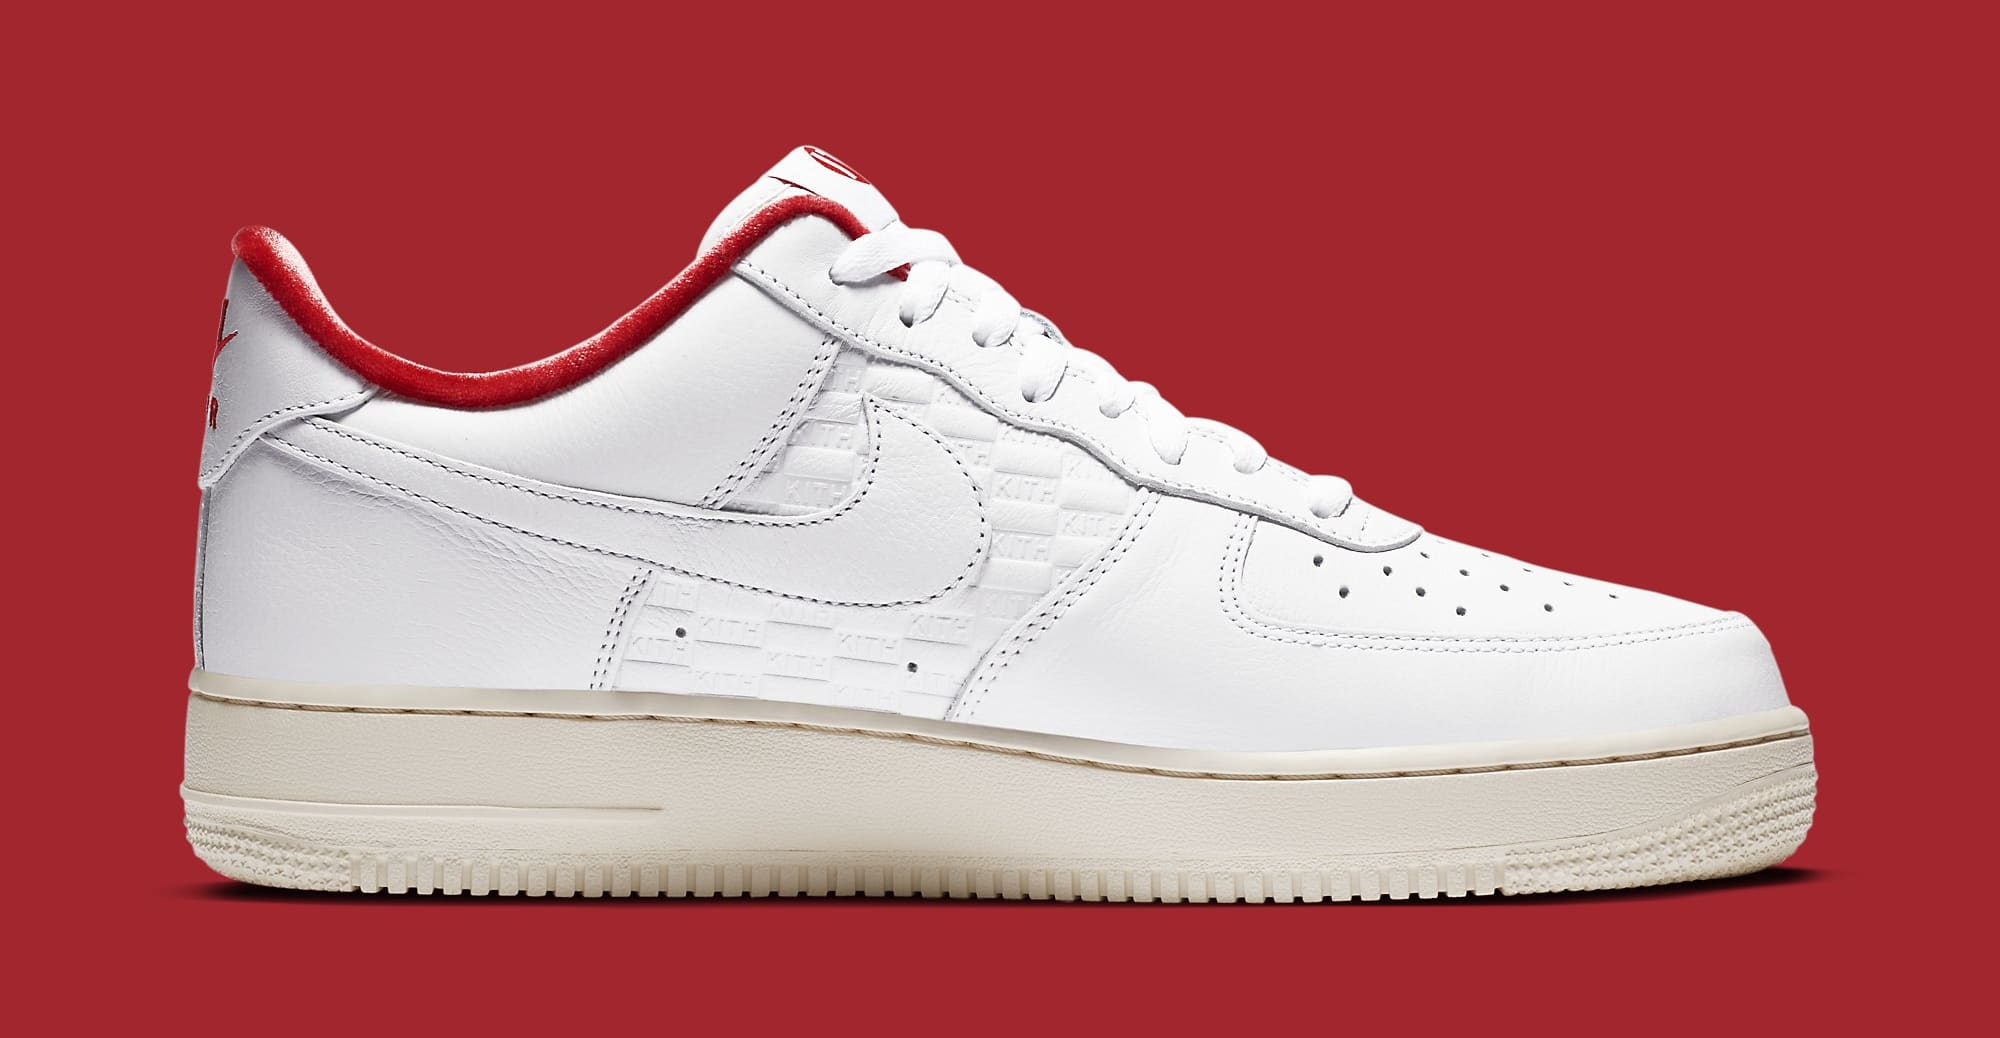 Kith x Nike Air Force 1 Low White/University Red-Metallic Gold CZ7926-100 Medial